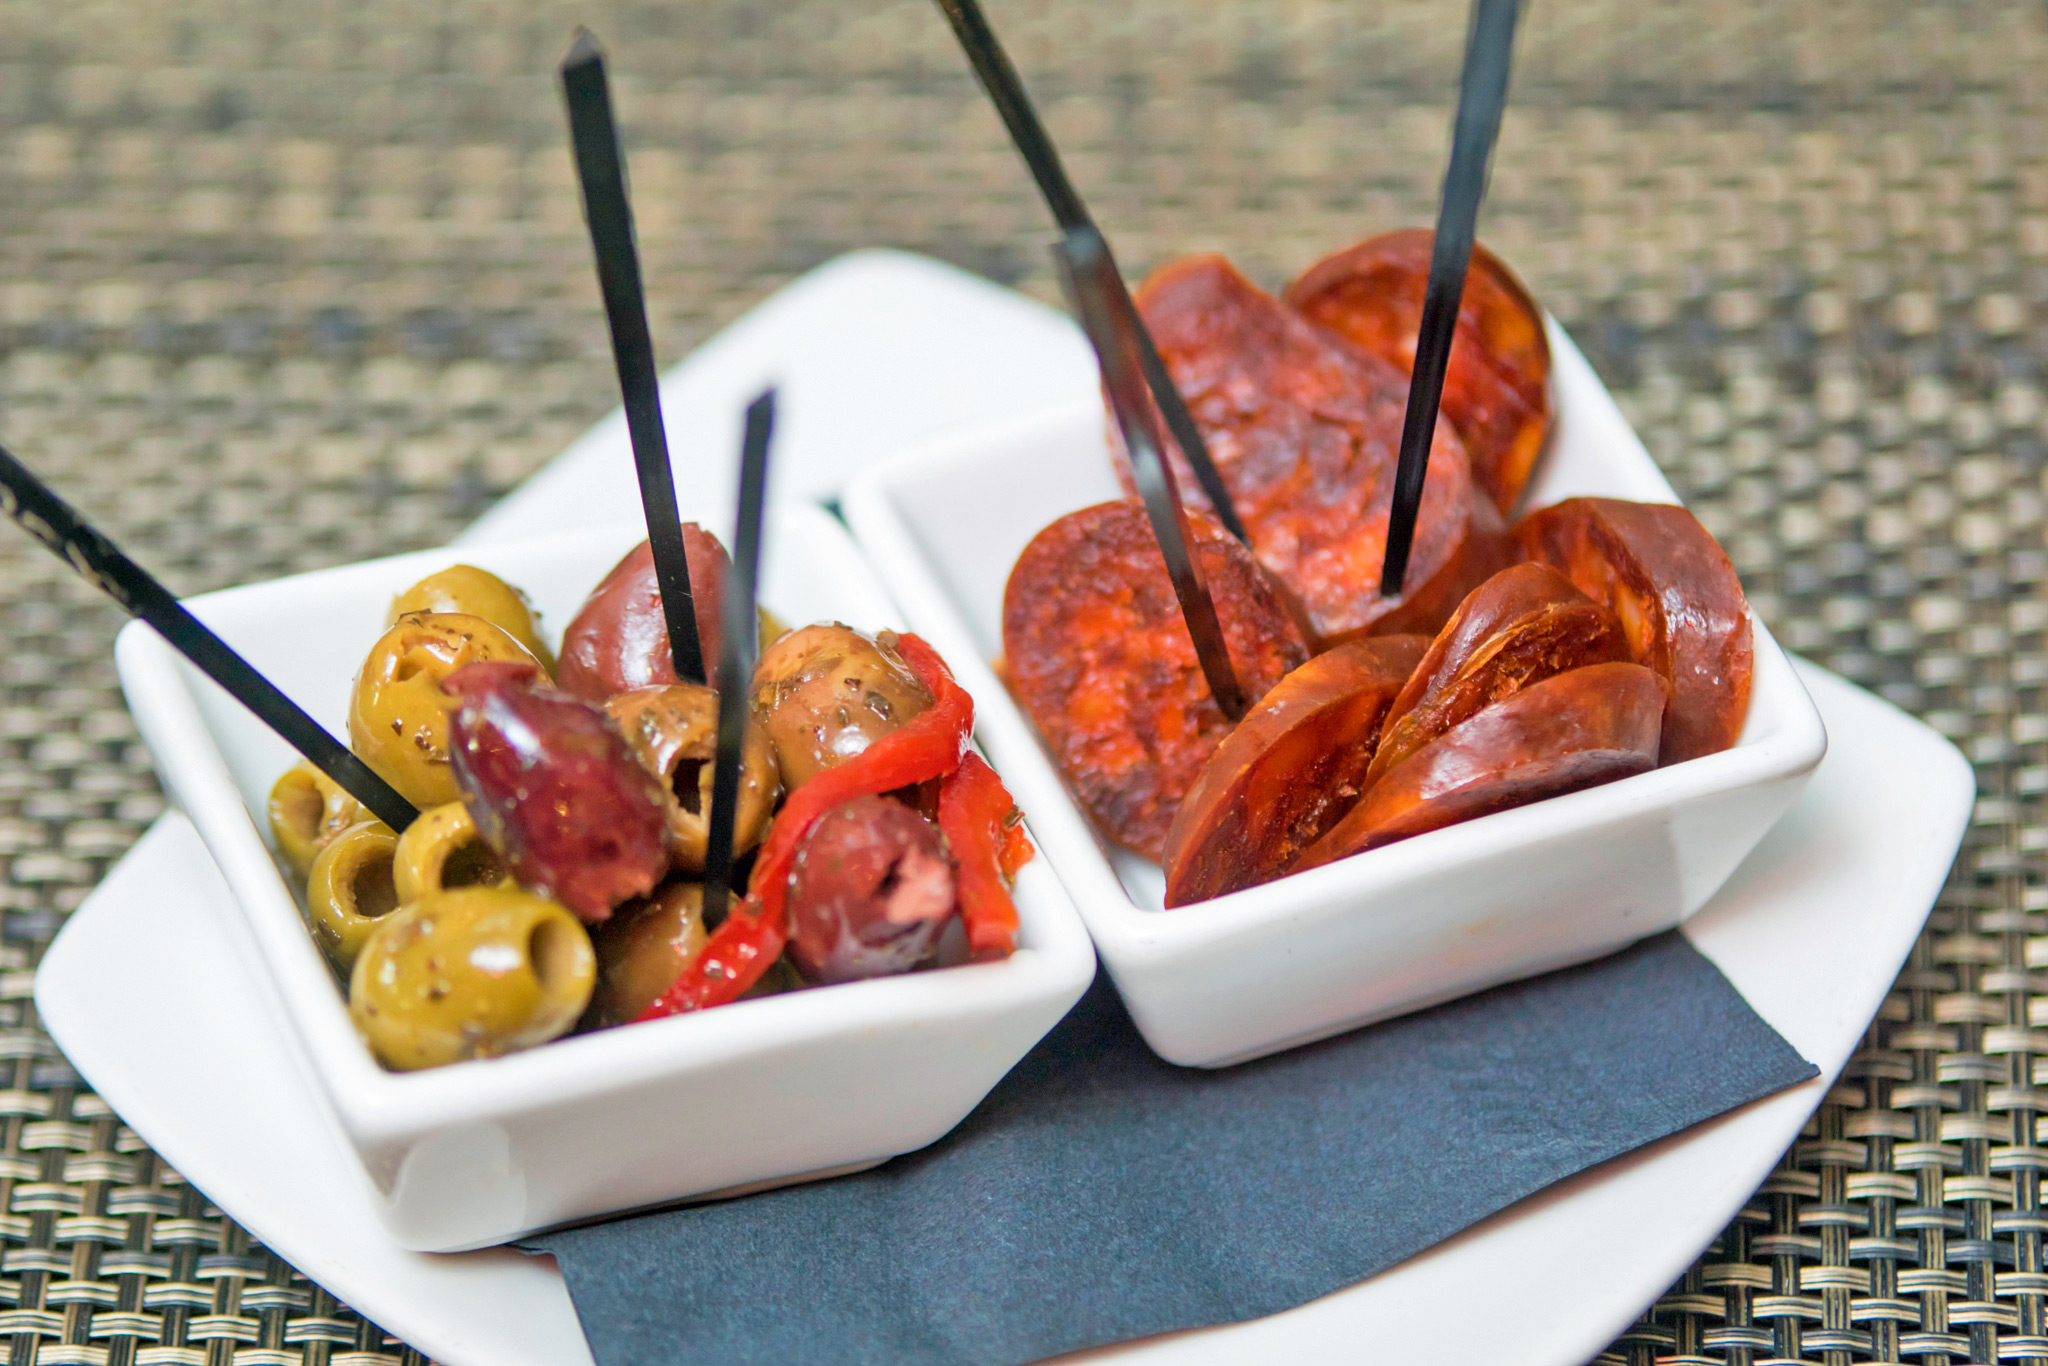 Chorizo, Olives and Toothpicks...